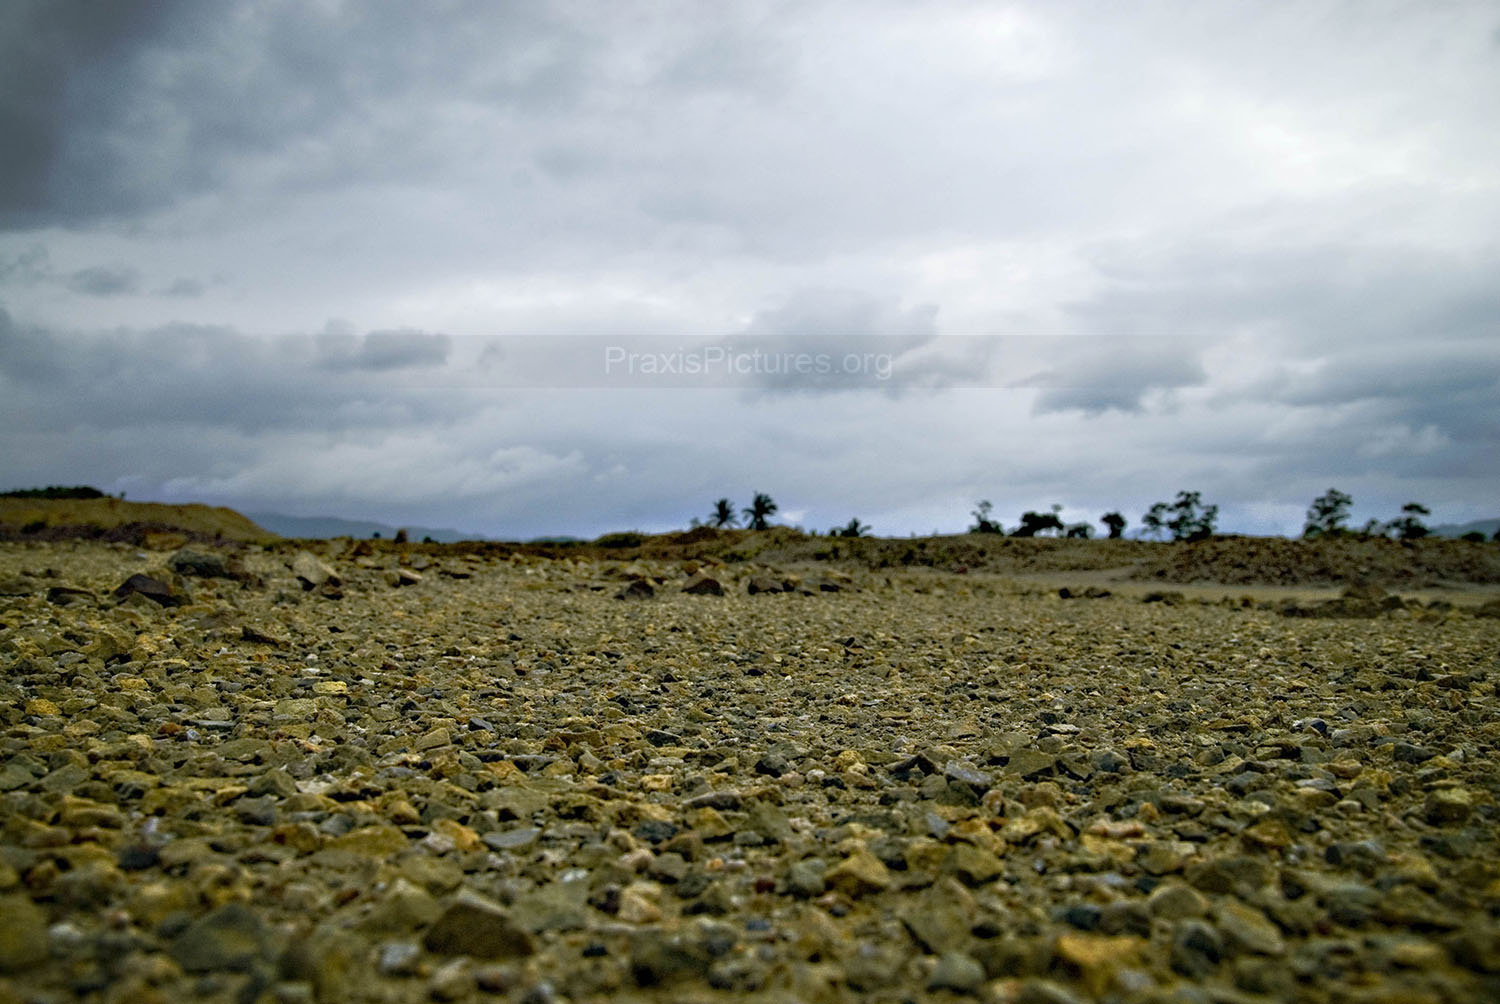 Scorched earth in Marinduque, Philippines.